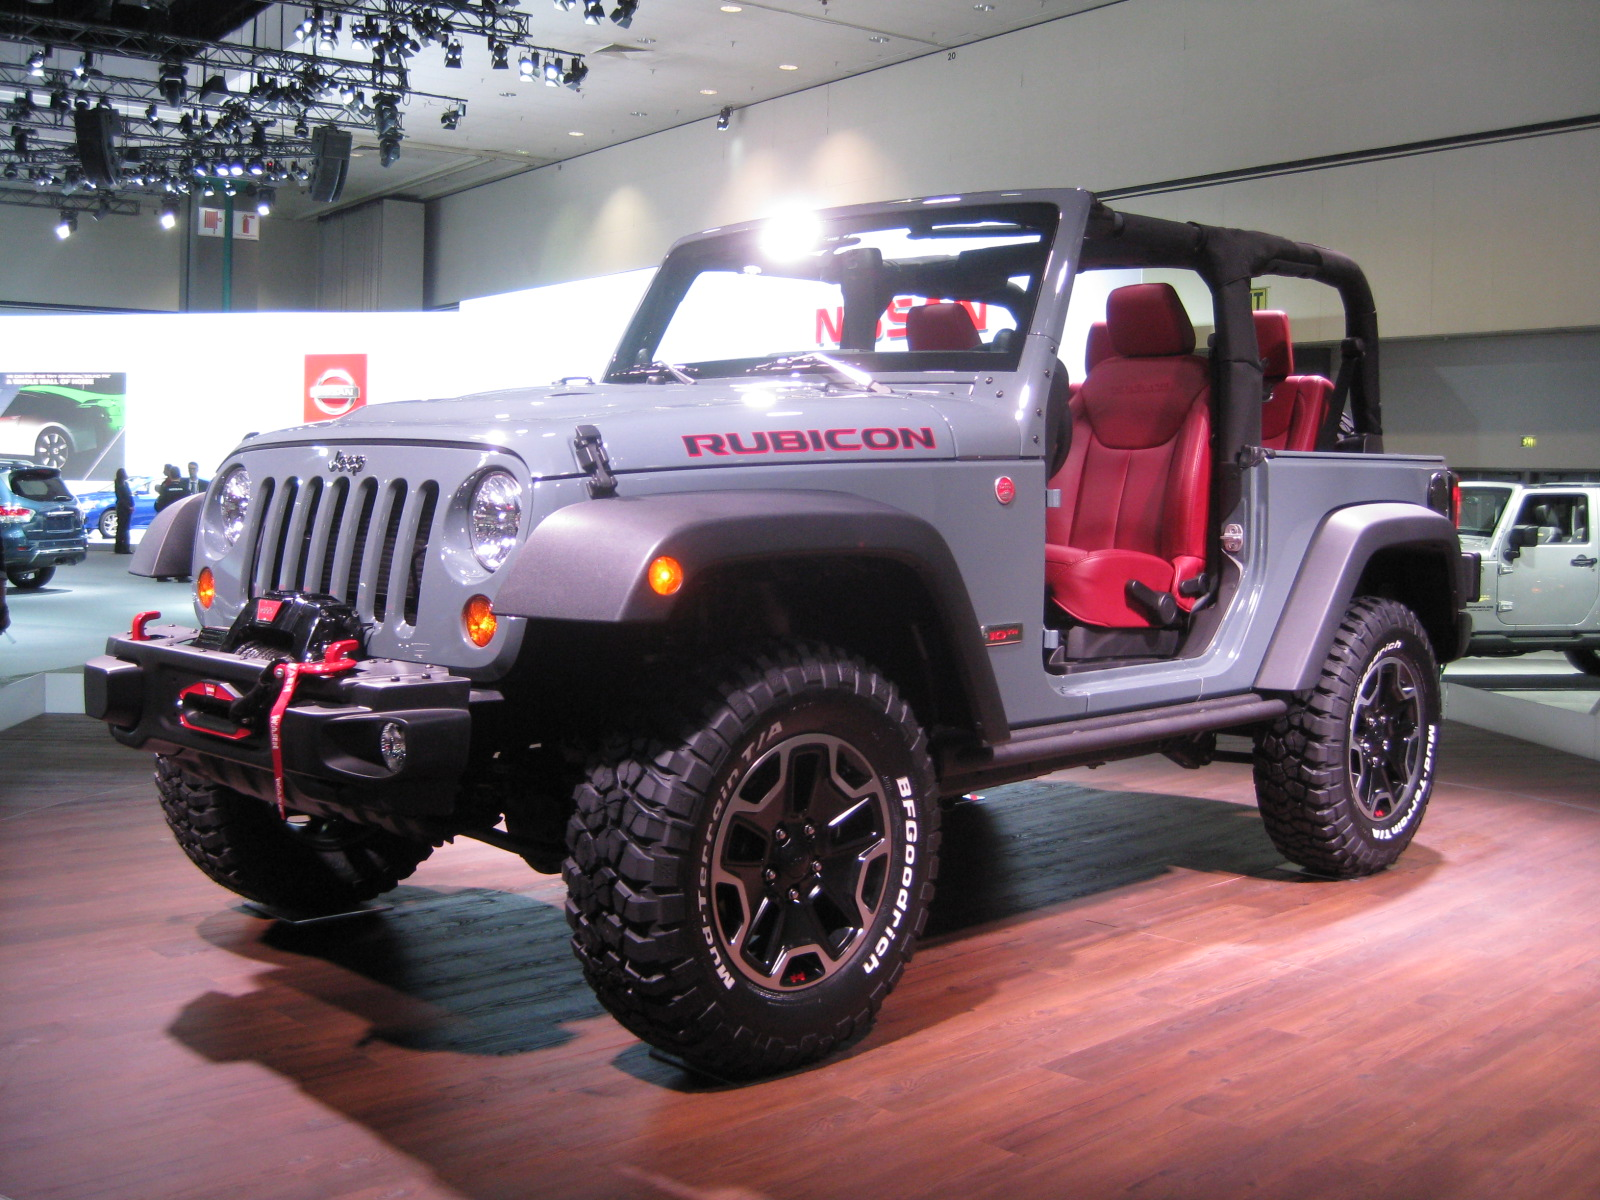 Chrysler Group – 2014 Jeep Wrangler Rubicon 10th Anniversary Edition